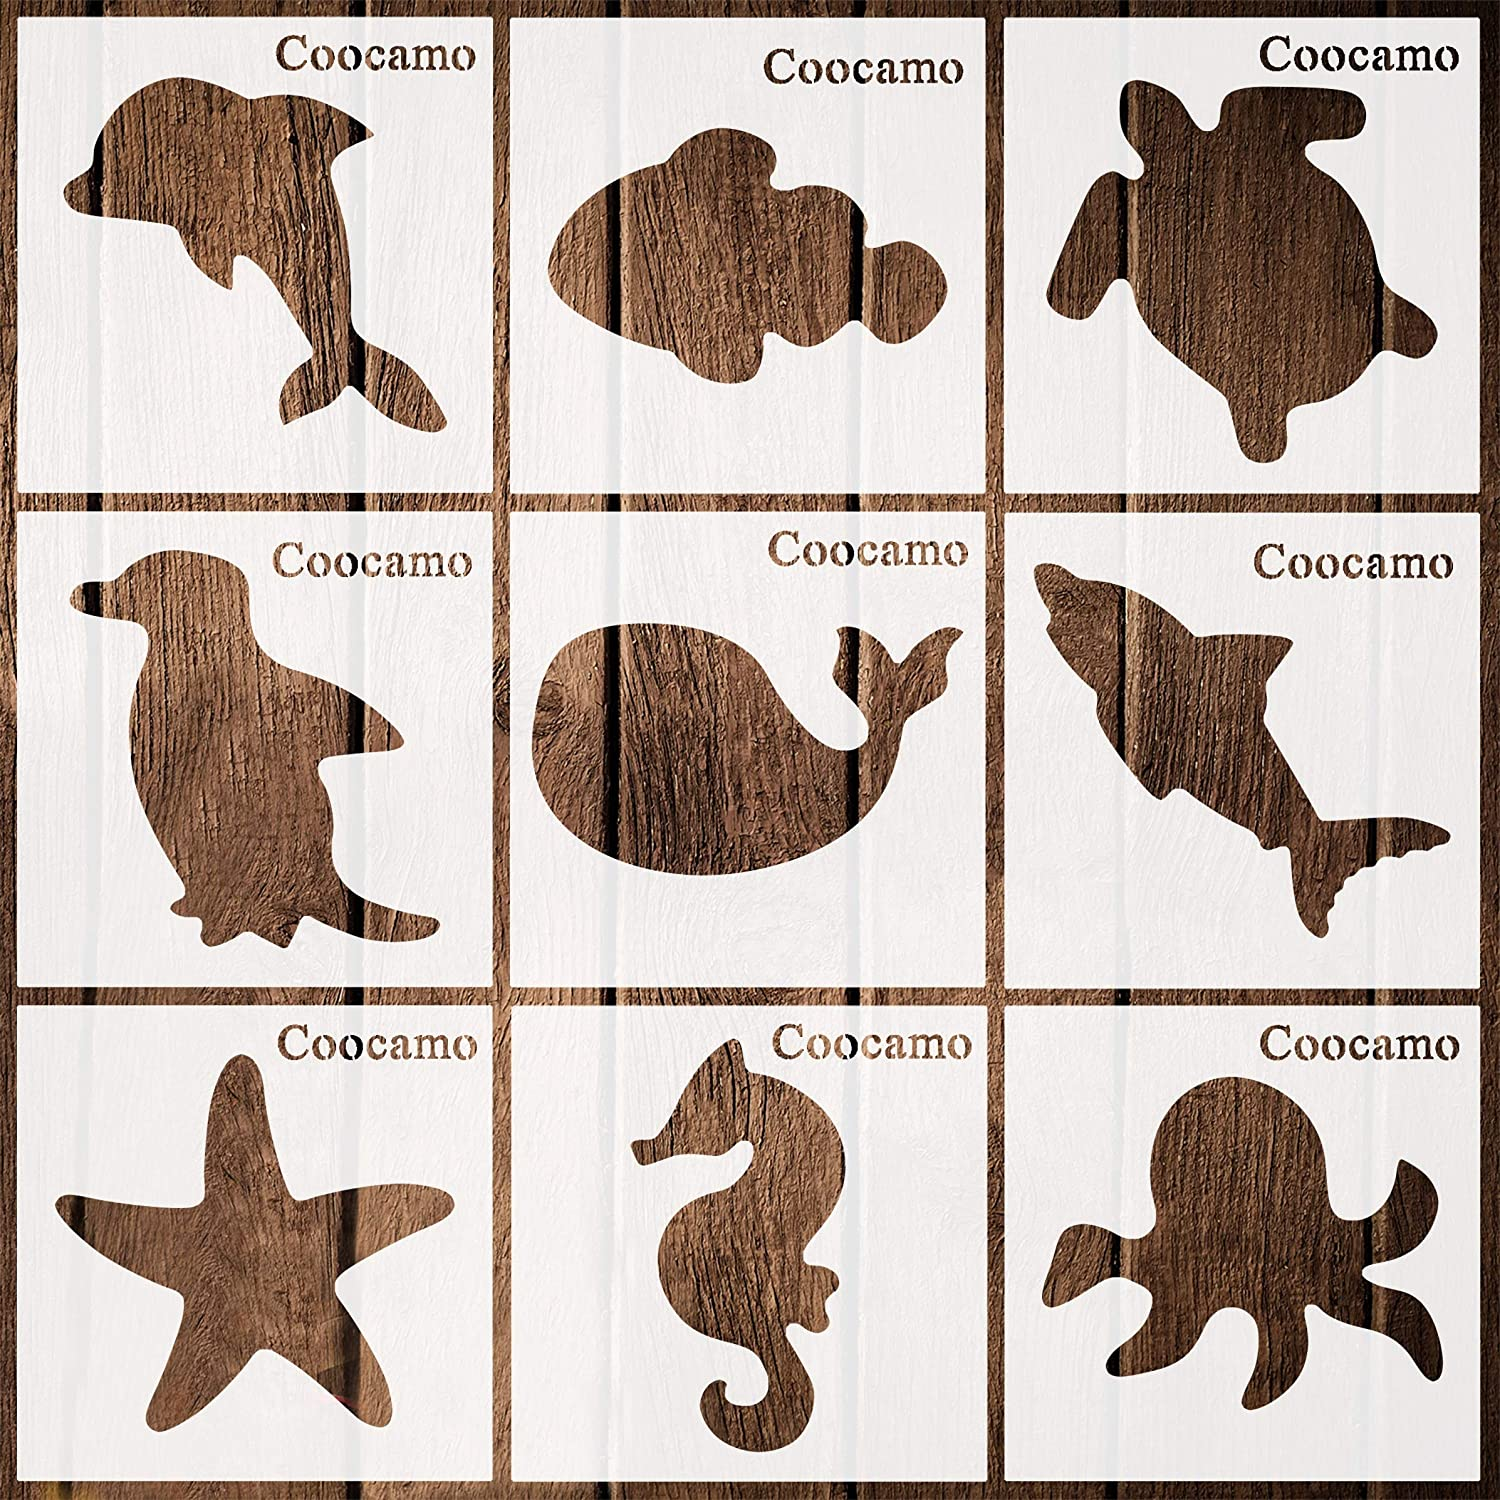 Coocamo 9 Pieces Marine Life Stencils Plastic Drawing Templates Reusable Ocean Life Theme Plastic Art Crafts Stencils for DIY Craft Painting Drawing